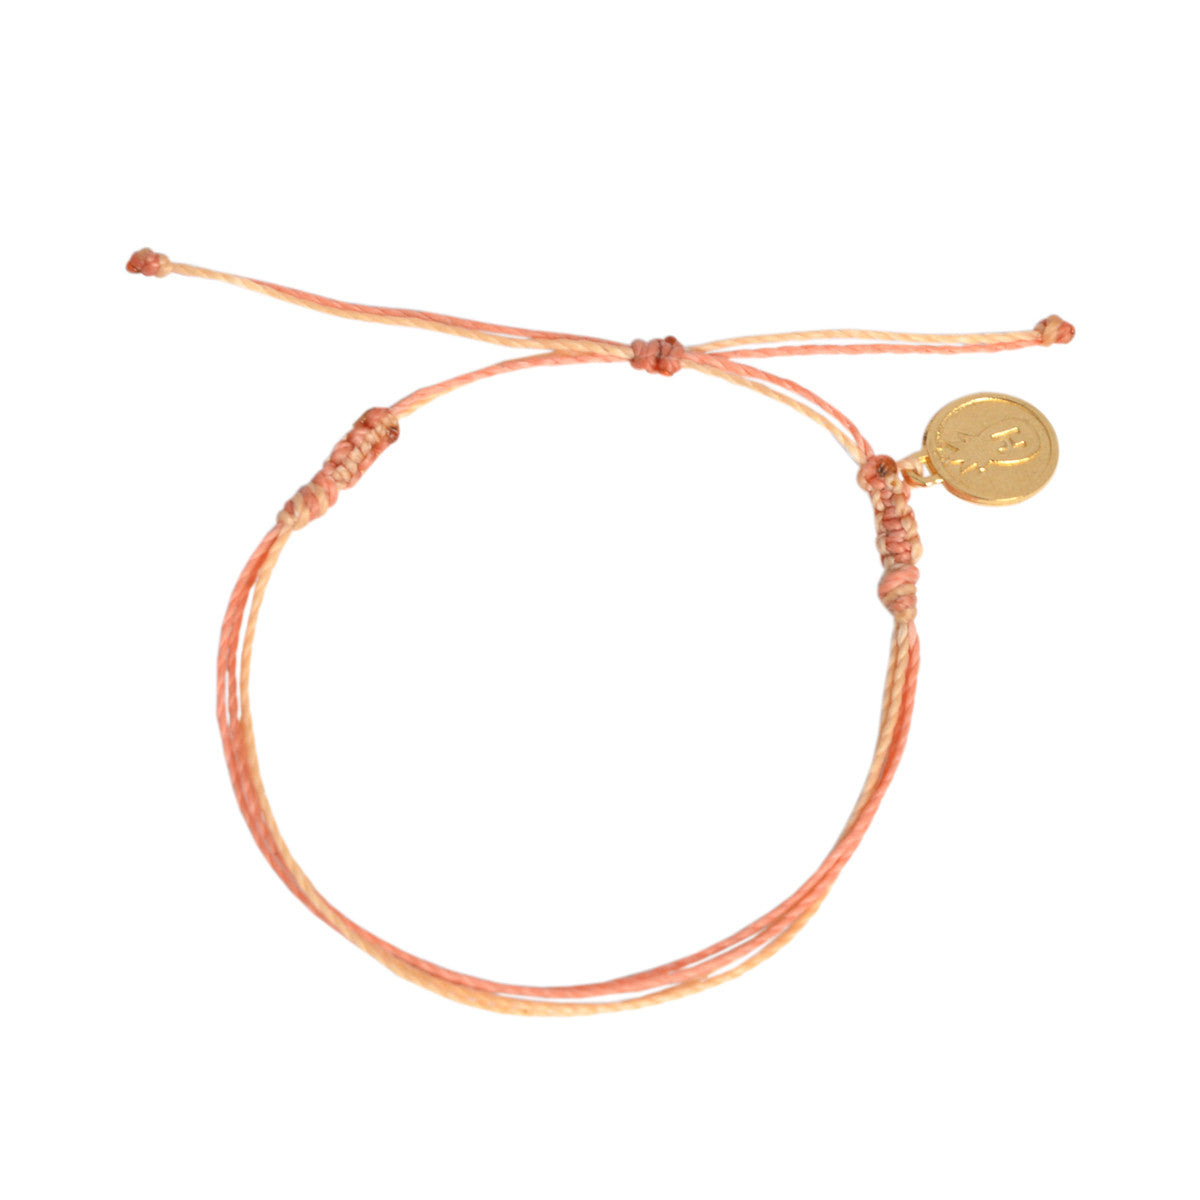 Tropical Coral Beach Ladder Bracelet Stack